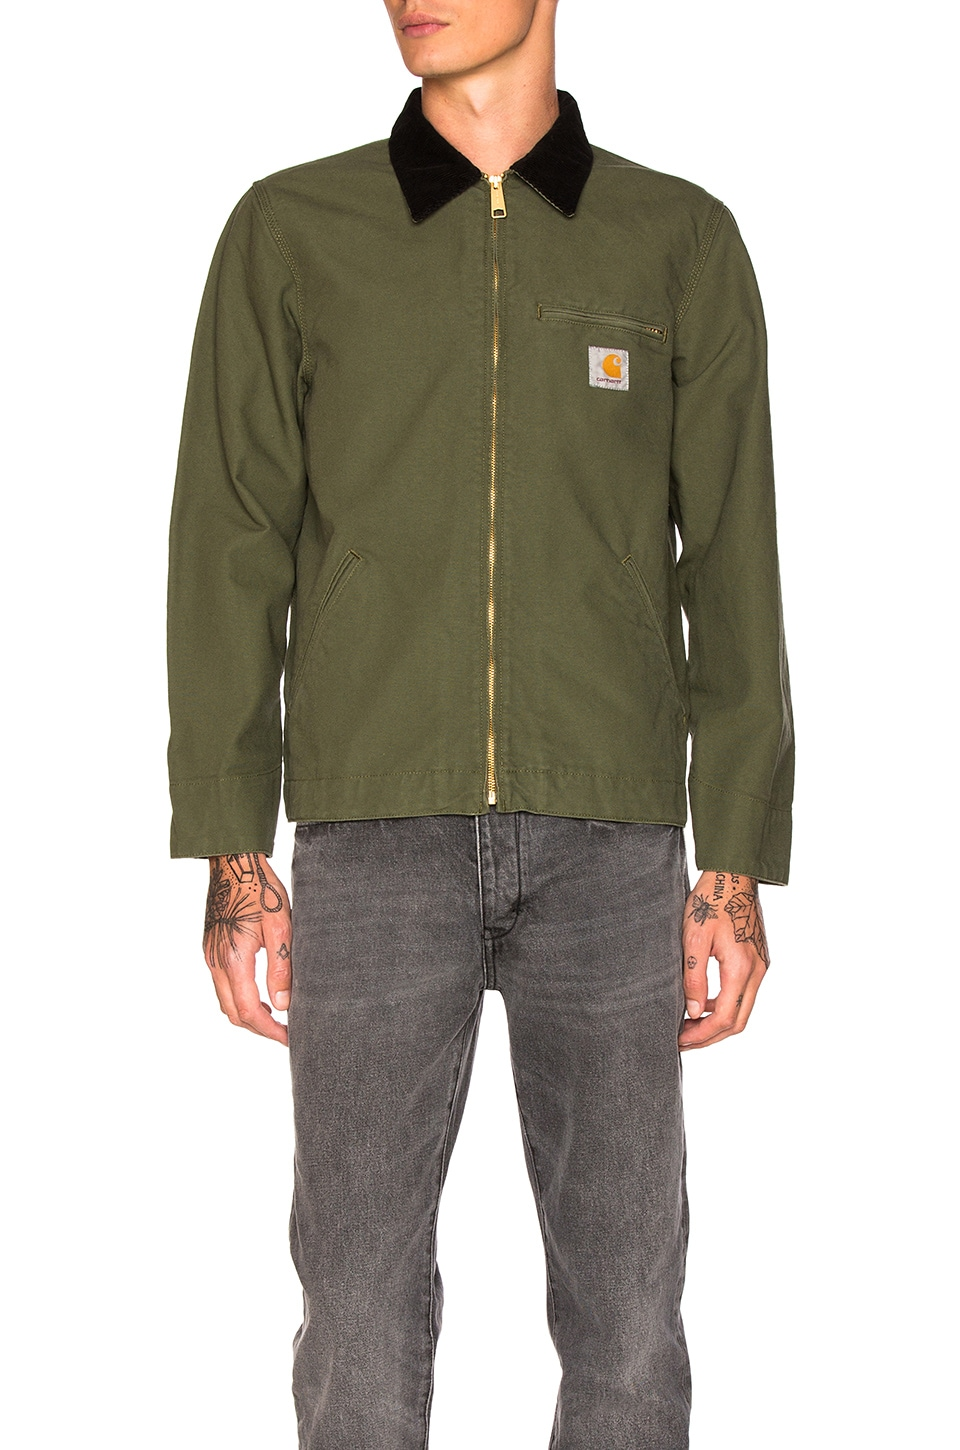 Detroit Jacket by Carhartt WIP